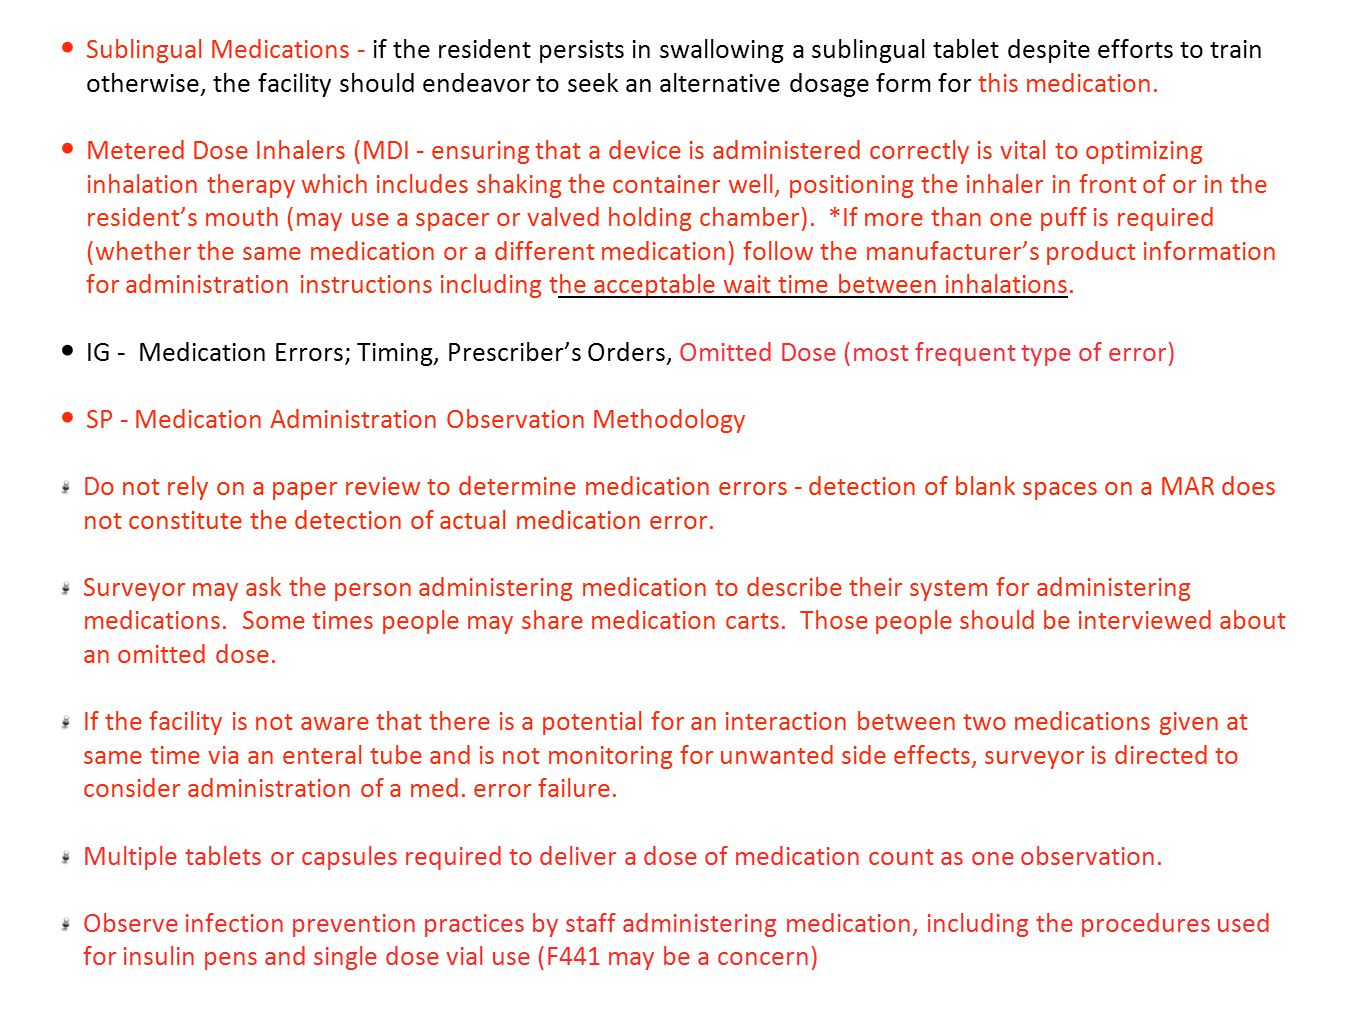 Sublingual Medications - if the resident persists in swallowing a sublingual tablet despite efforts to train otherwise, the facility should endeavor to seek an alternative dosage form for this medication.